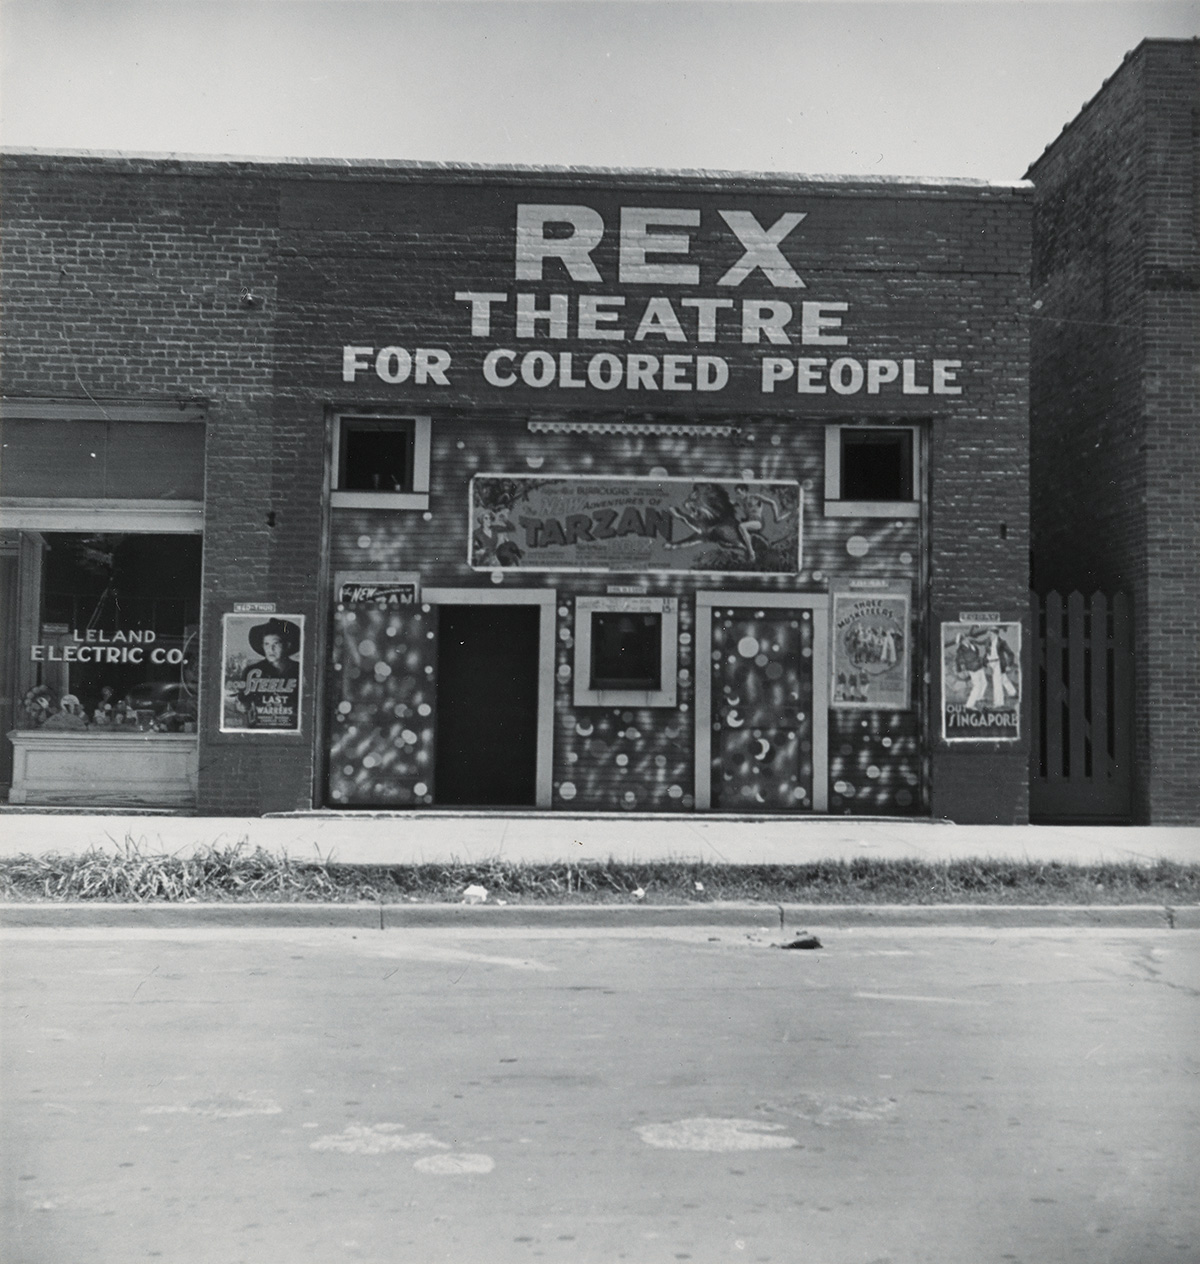 DOROTHEA-LANGE-(1895-1965)-Rex-Theatre-for-Colored-People-Le